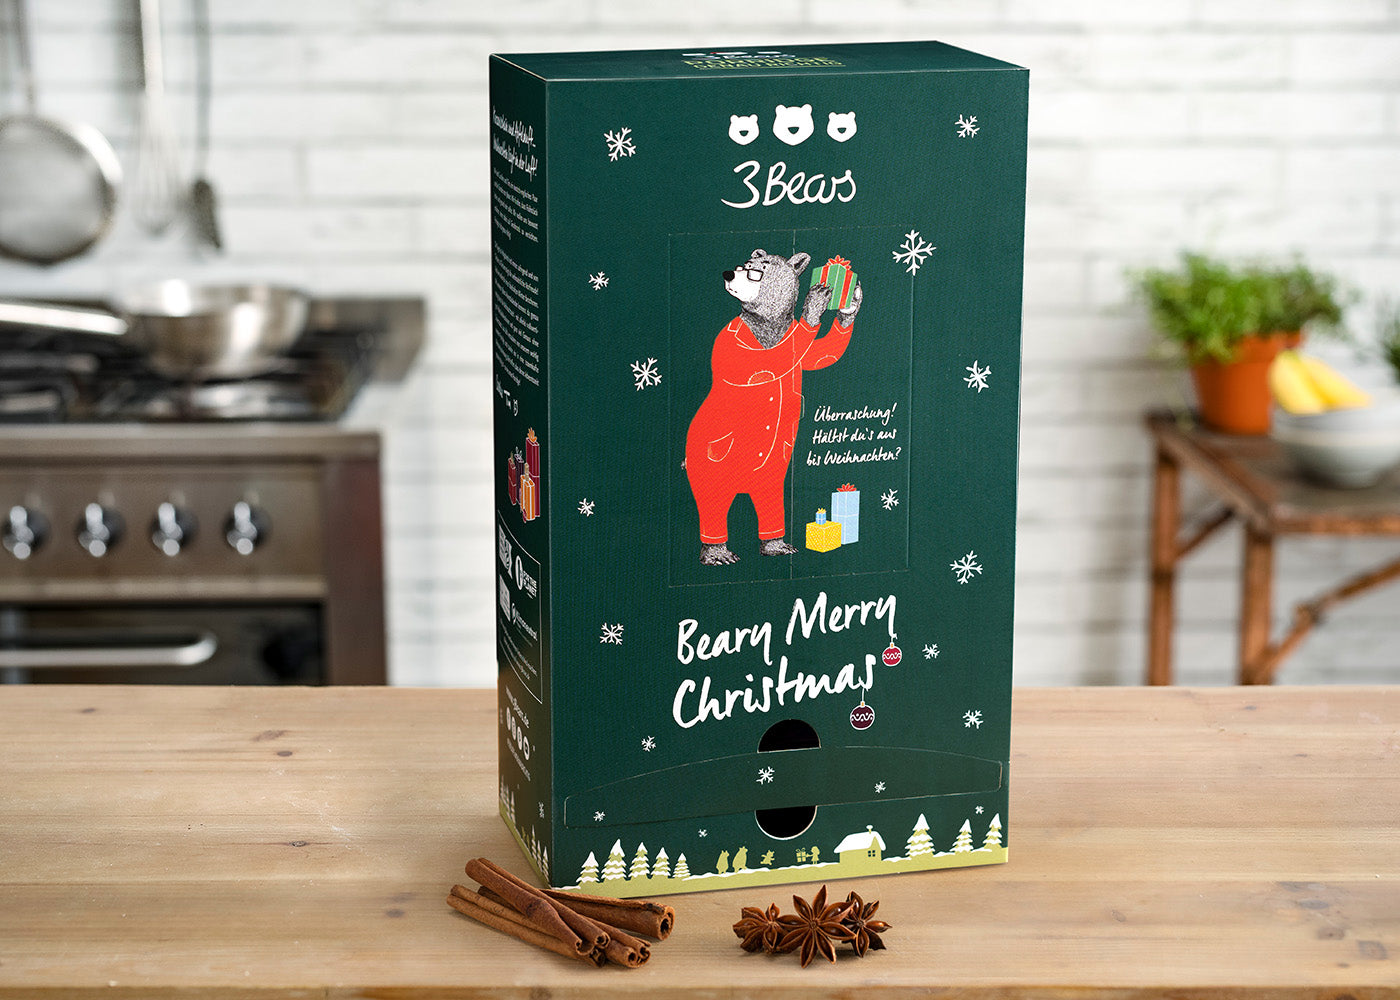 3Bears Porridge Adventskalender